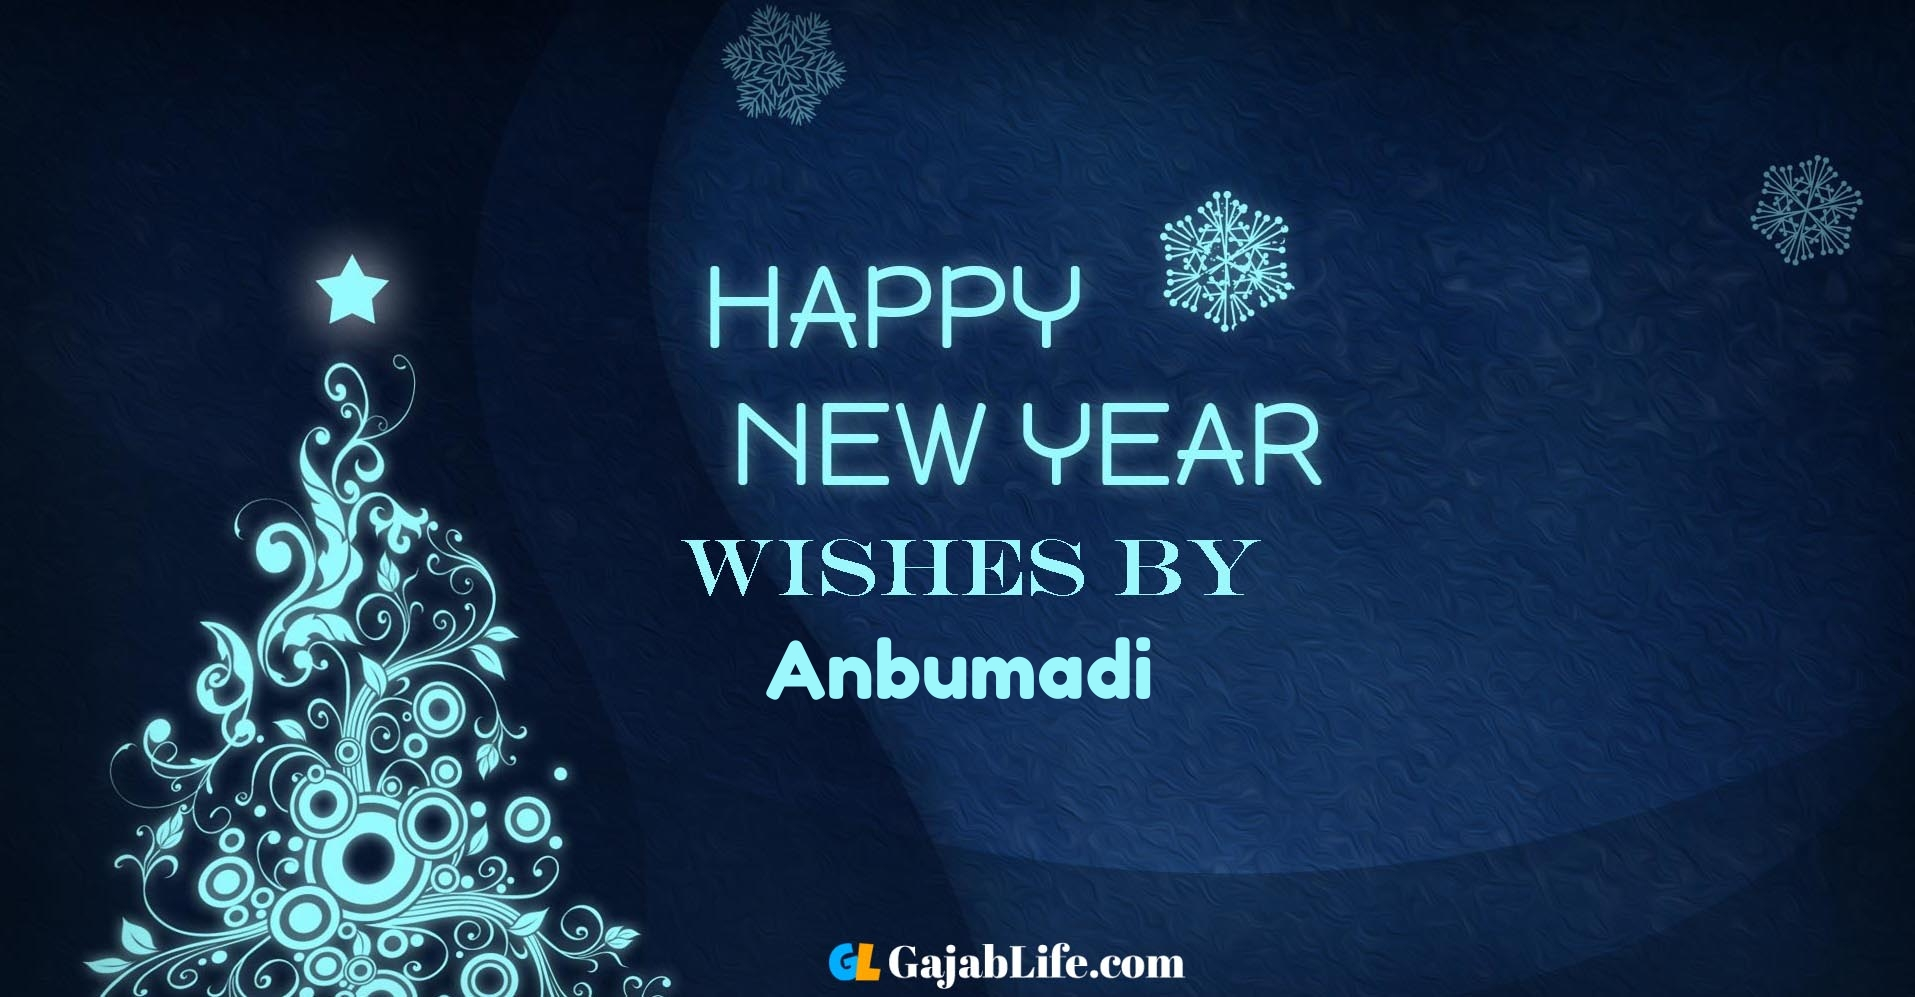 Happy new year wishes anbumadi